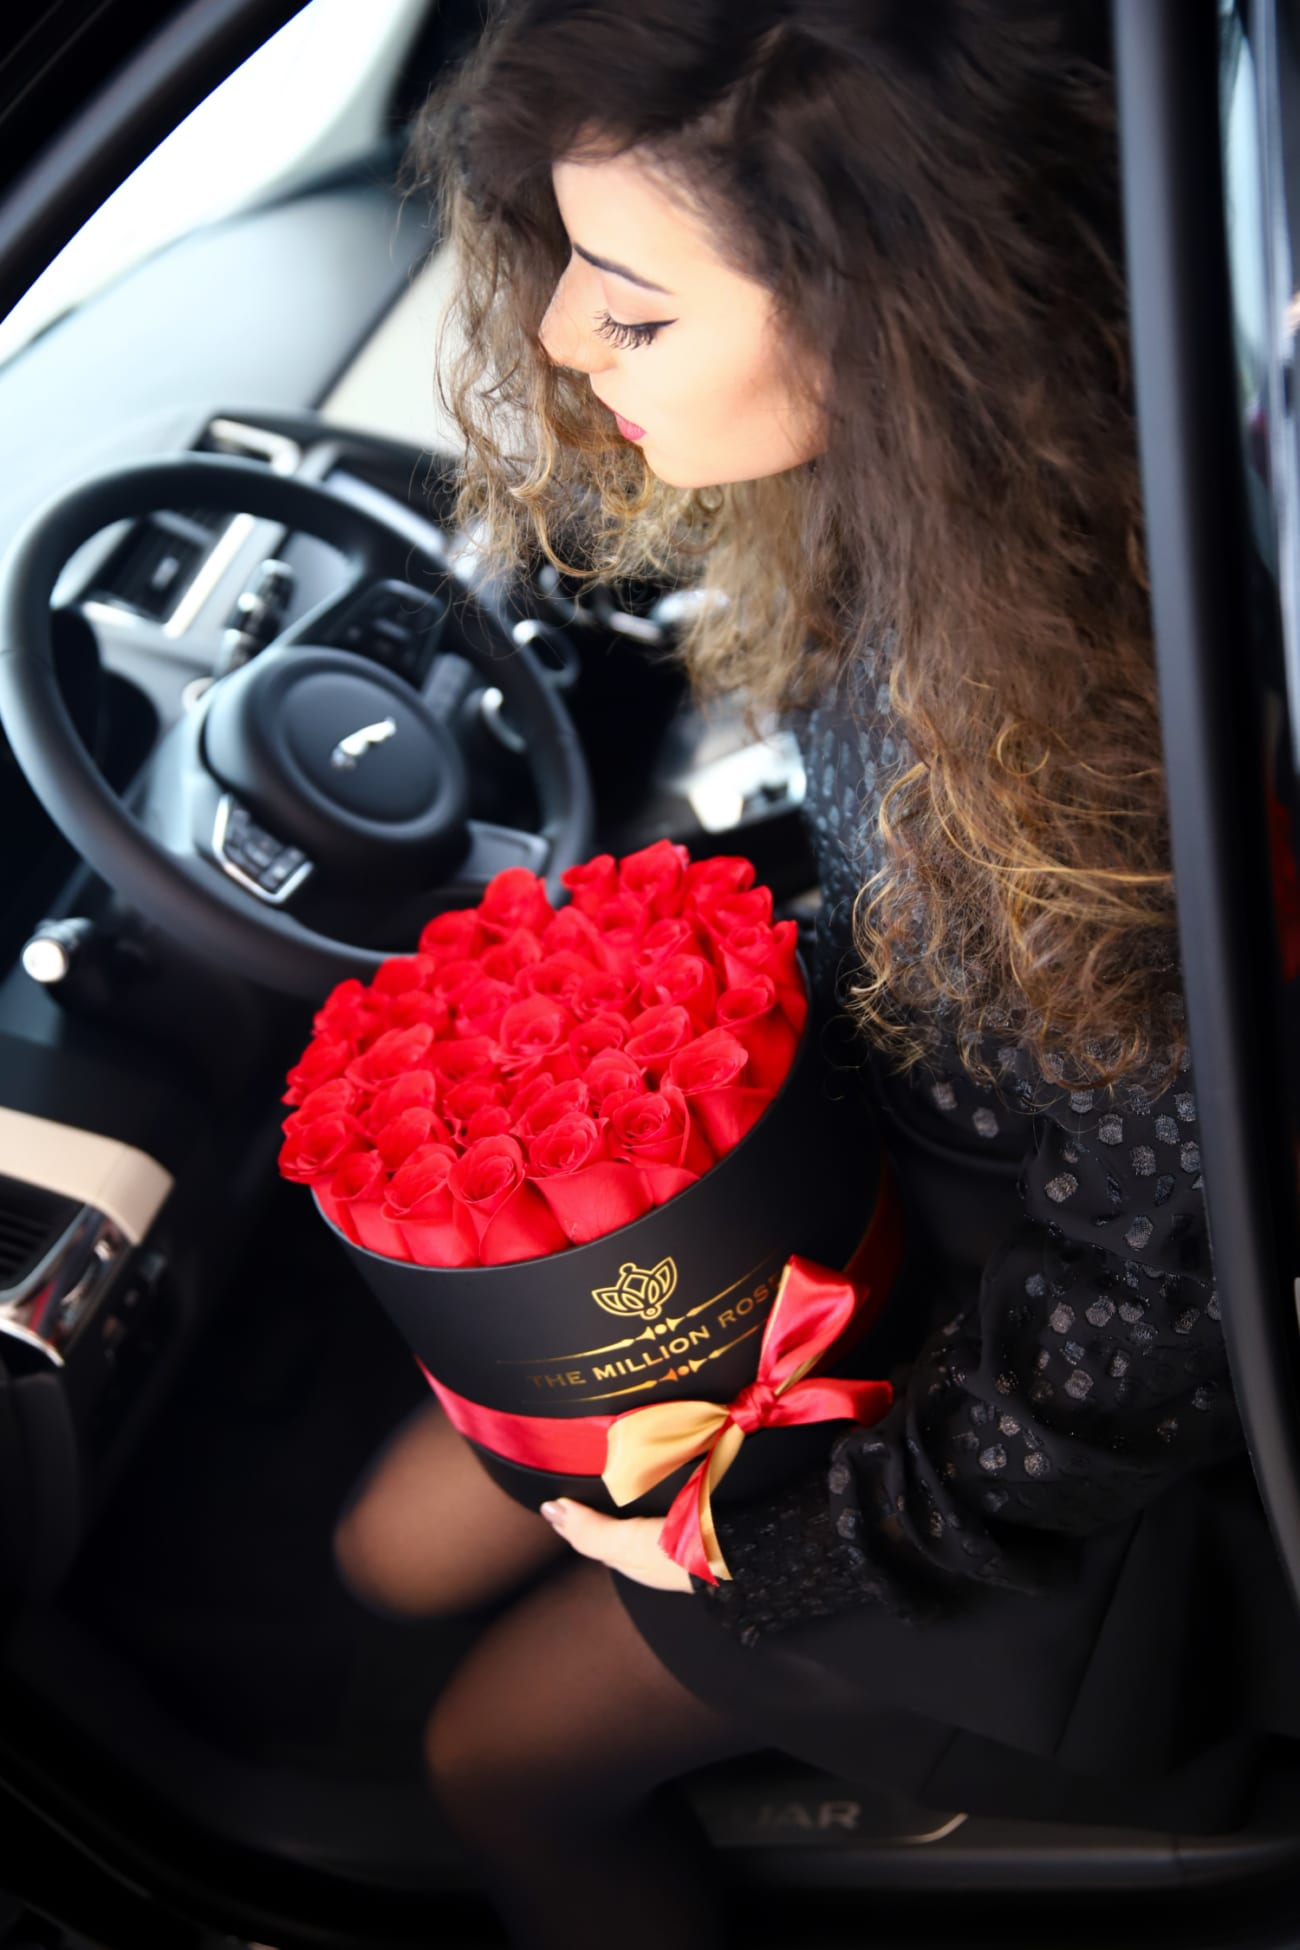 million roses timisoara blogger roxi rose fashion blog beauty romania